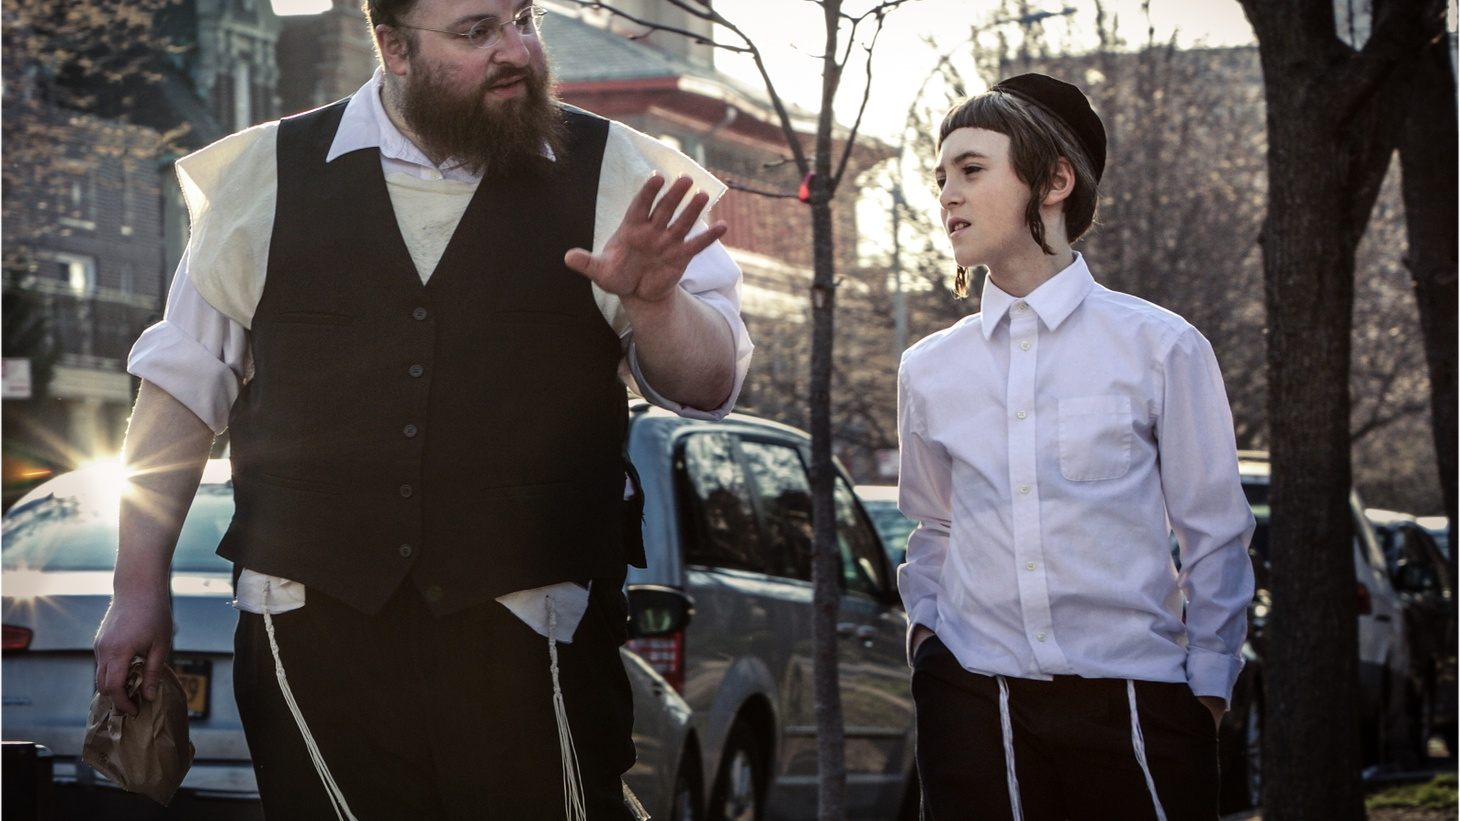 """Menashe"" is a new movie about life inside New York's hasidic community. The director talks about shooting a movie on location where you're not wanted, with actors who've never been in a movie or seen a movie before. 